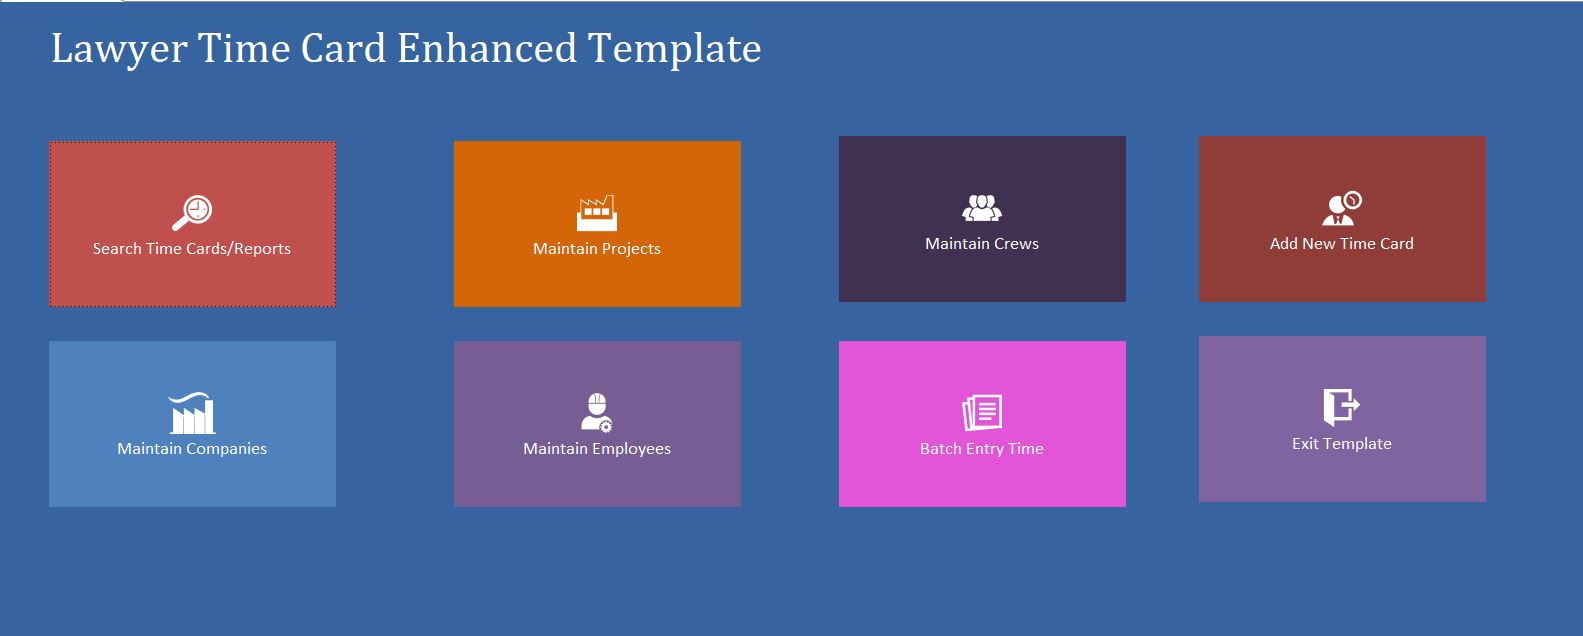 Enhanced Lawyer Time Card Template | Time Card Database